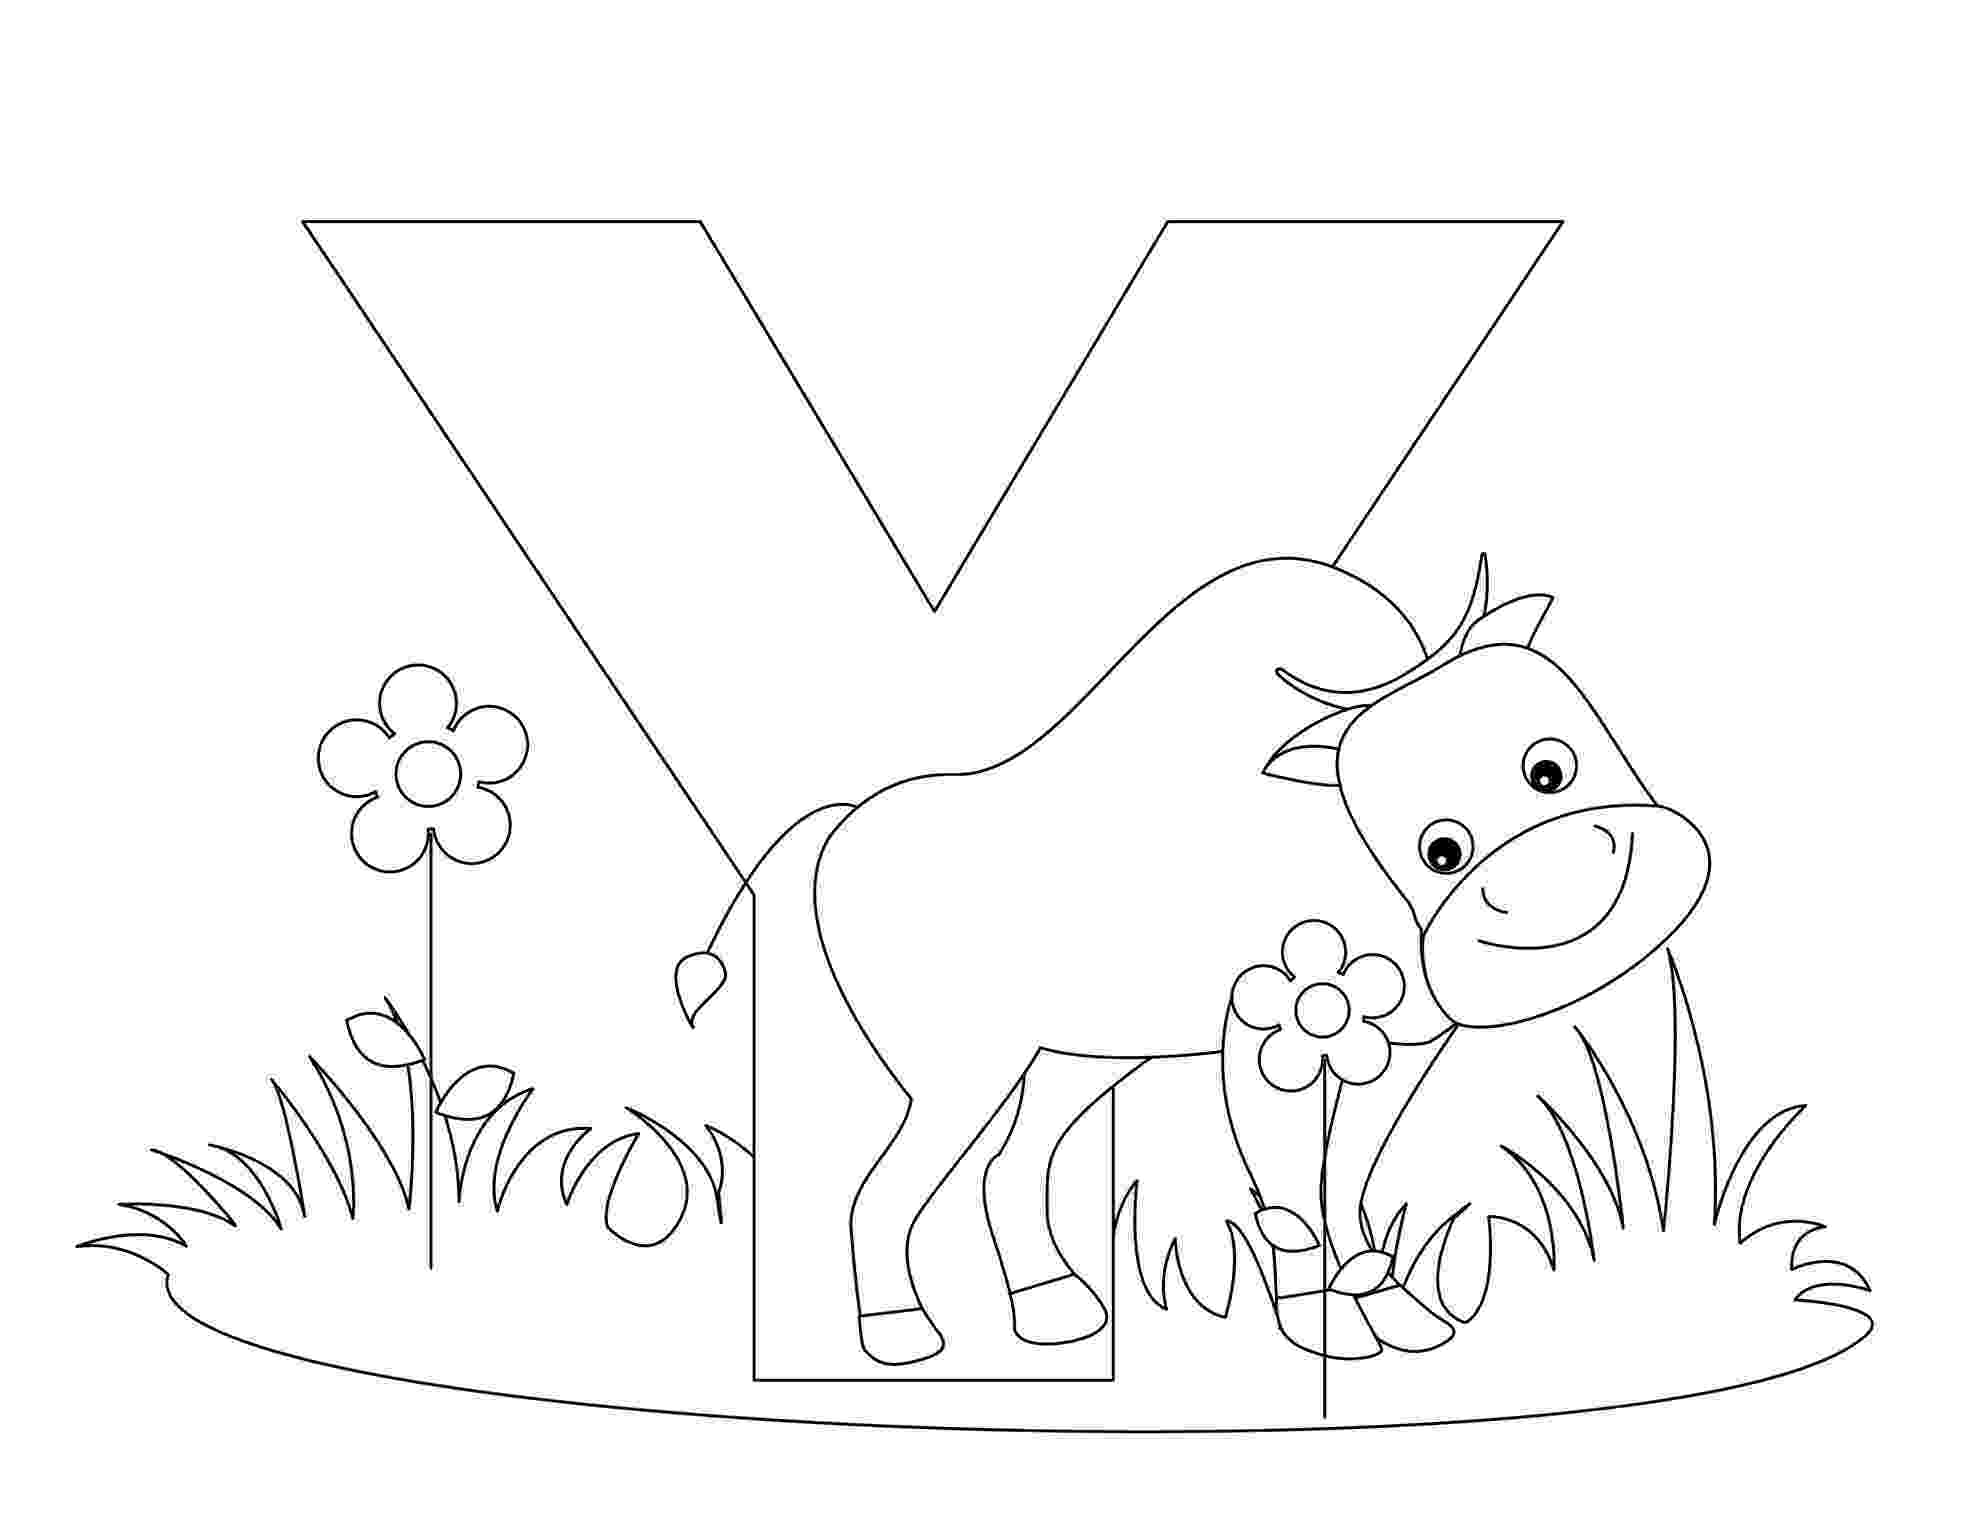 coloring pictures of alphabet letters free printable alphabet coloring pages for kids best alphabet letters pictures of coloring